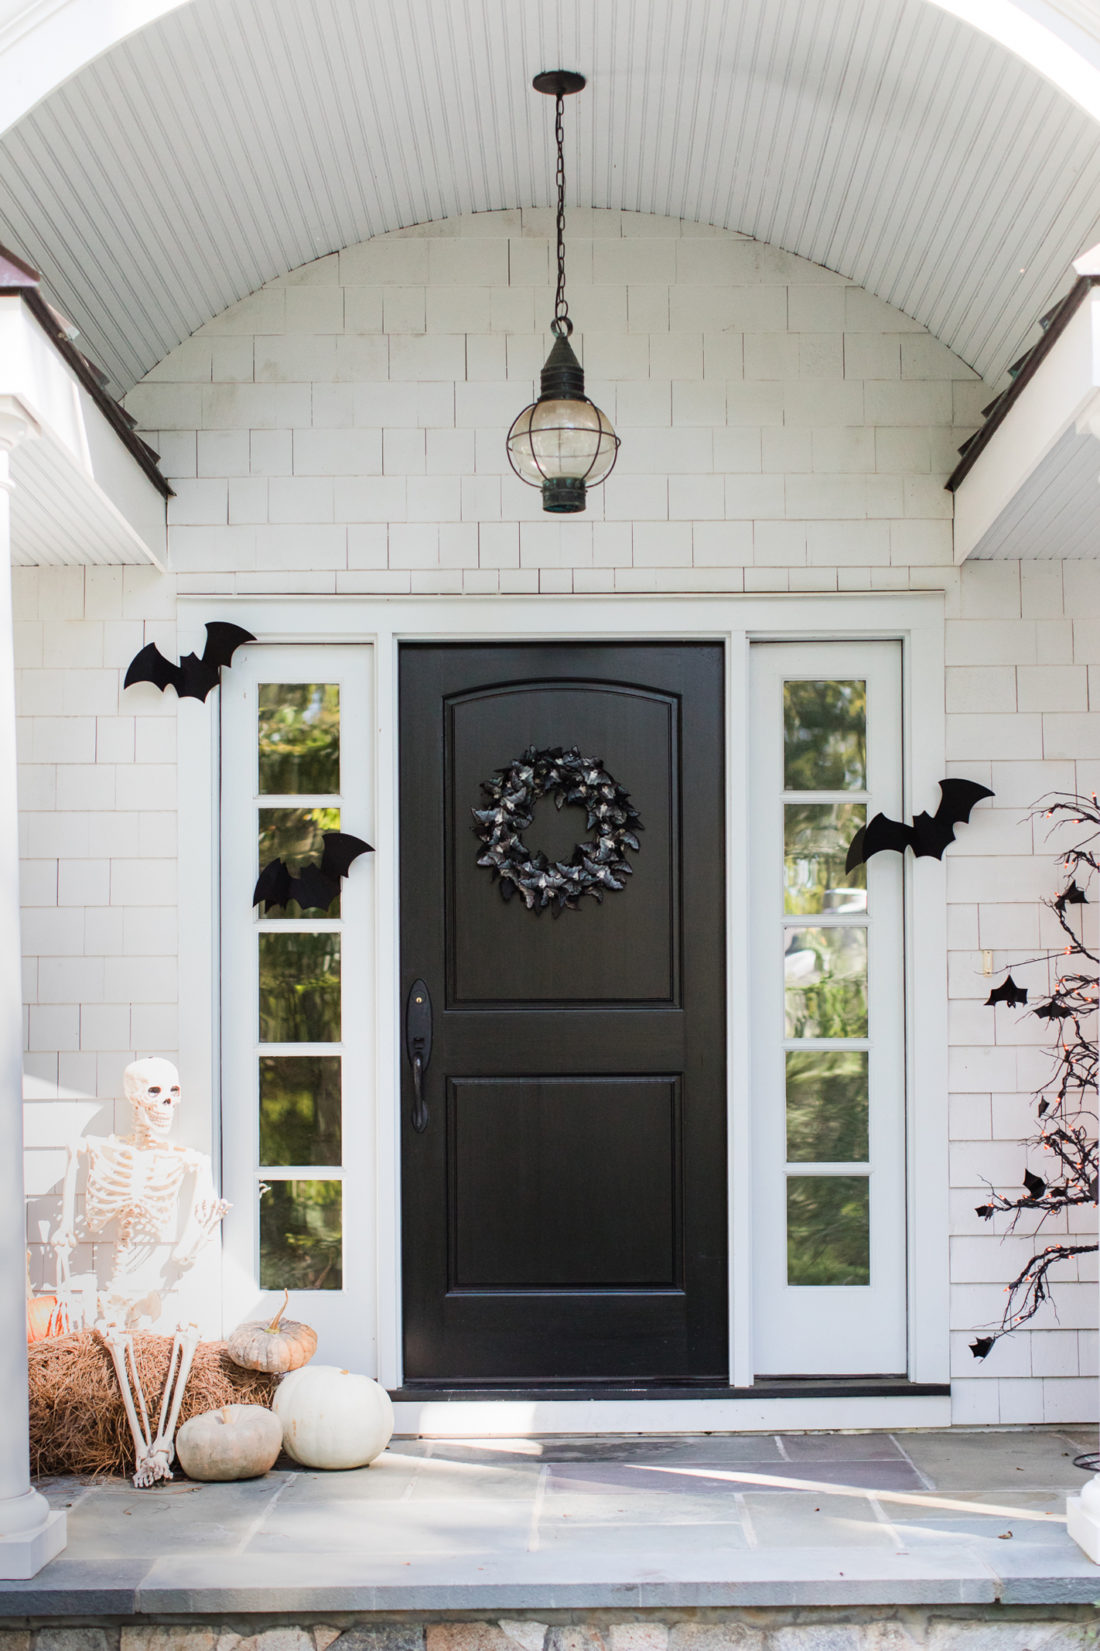 the spooky bat themed entryway to Eva Amurri Martino's Connecticut Home that is decorated for Halloween